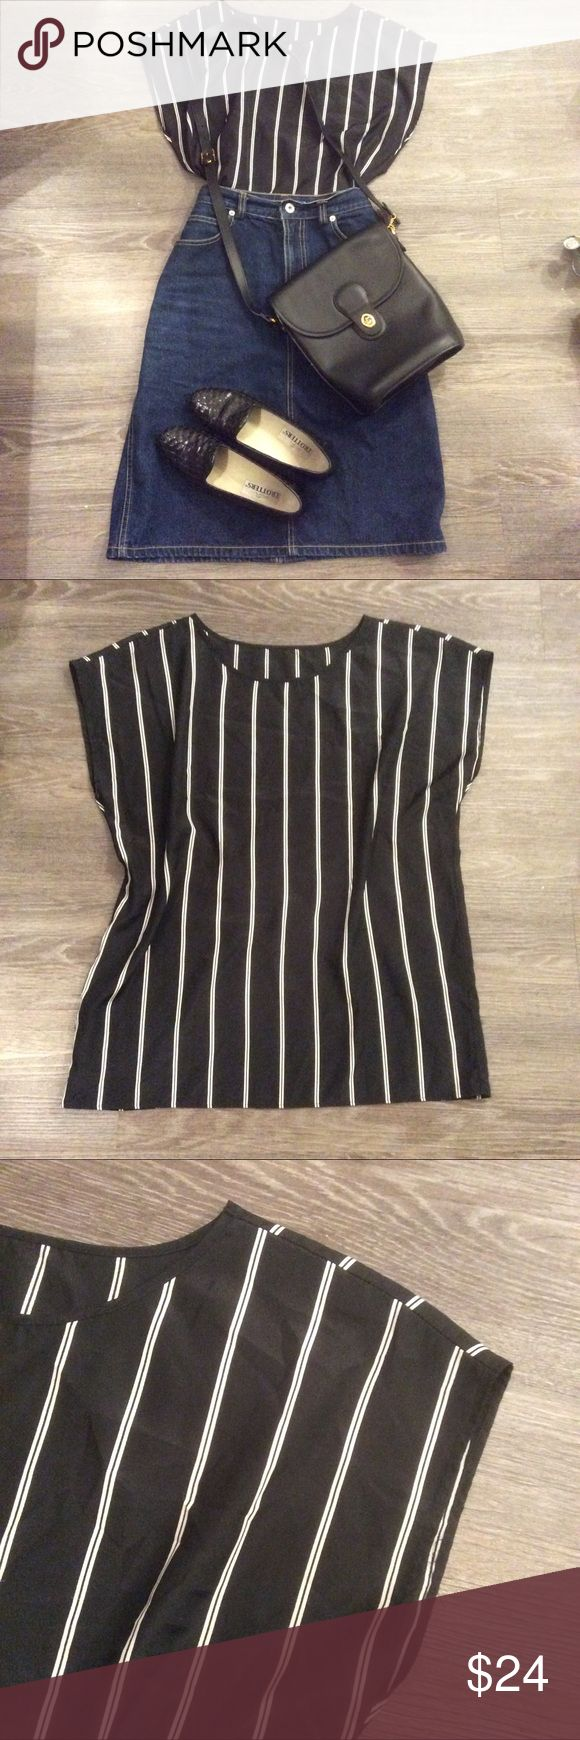 🌾 Handmade Parisian simple stripe top blouse cute Adorable black stripe top, lightweight and unlined and endlessly versatile. Photo is for reference and is shown tucked into a skirt, but can be worn loose over some skinny jeans. Accessories not included but sold separately. Best fits XS-M depending on how slouchy you'd like it to be. Purchased from a vintage boutique in Paris France. Looks very much what Alexa Chung would wear. Bundle to save! Vintage Tops Blouses